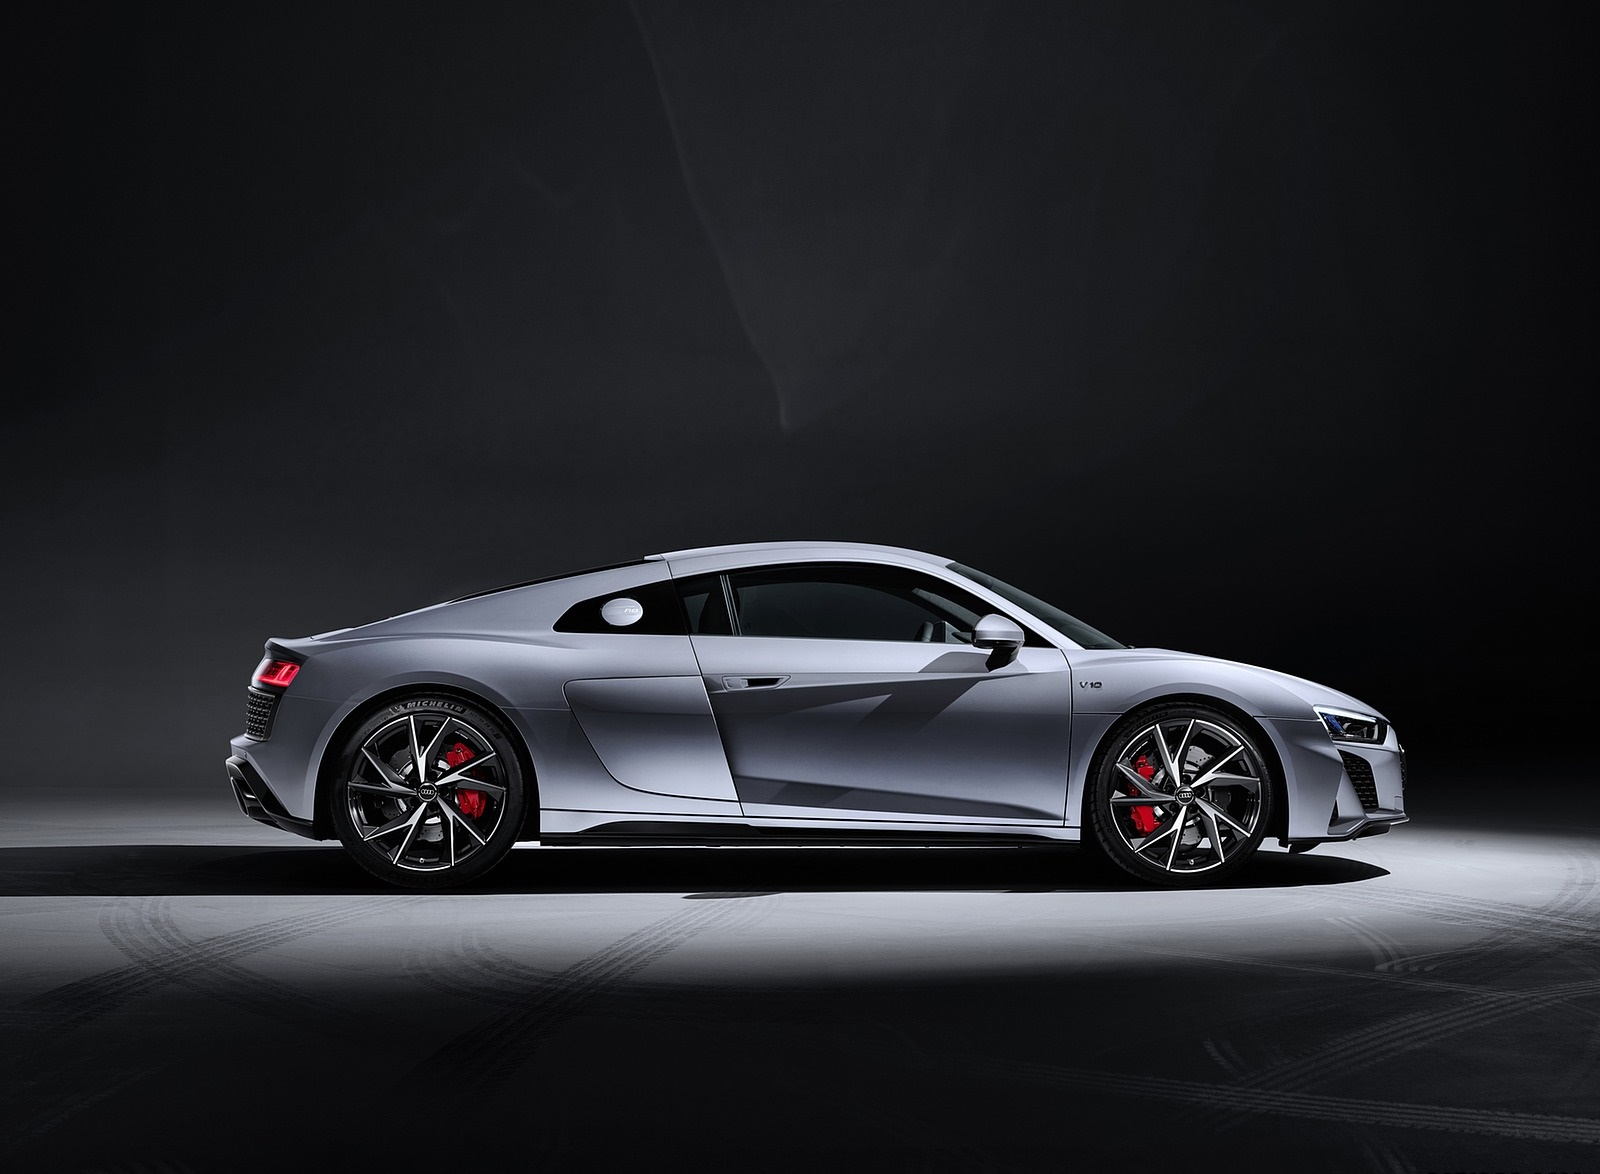 2020 Audi R8 V10 RWD Coupe (Color: Florett Silver) Side Wallpapers #27 of 32